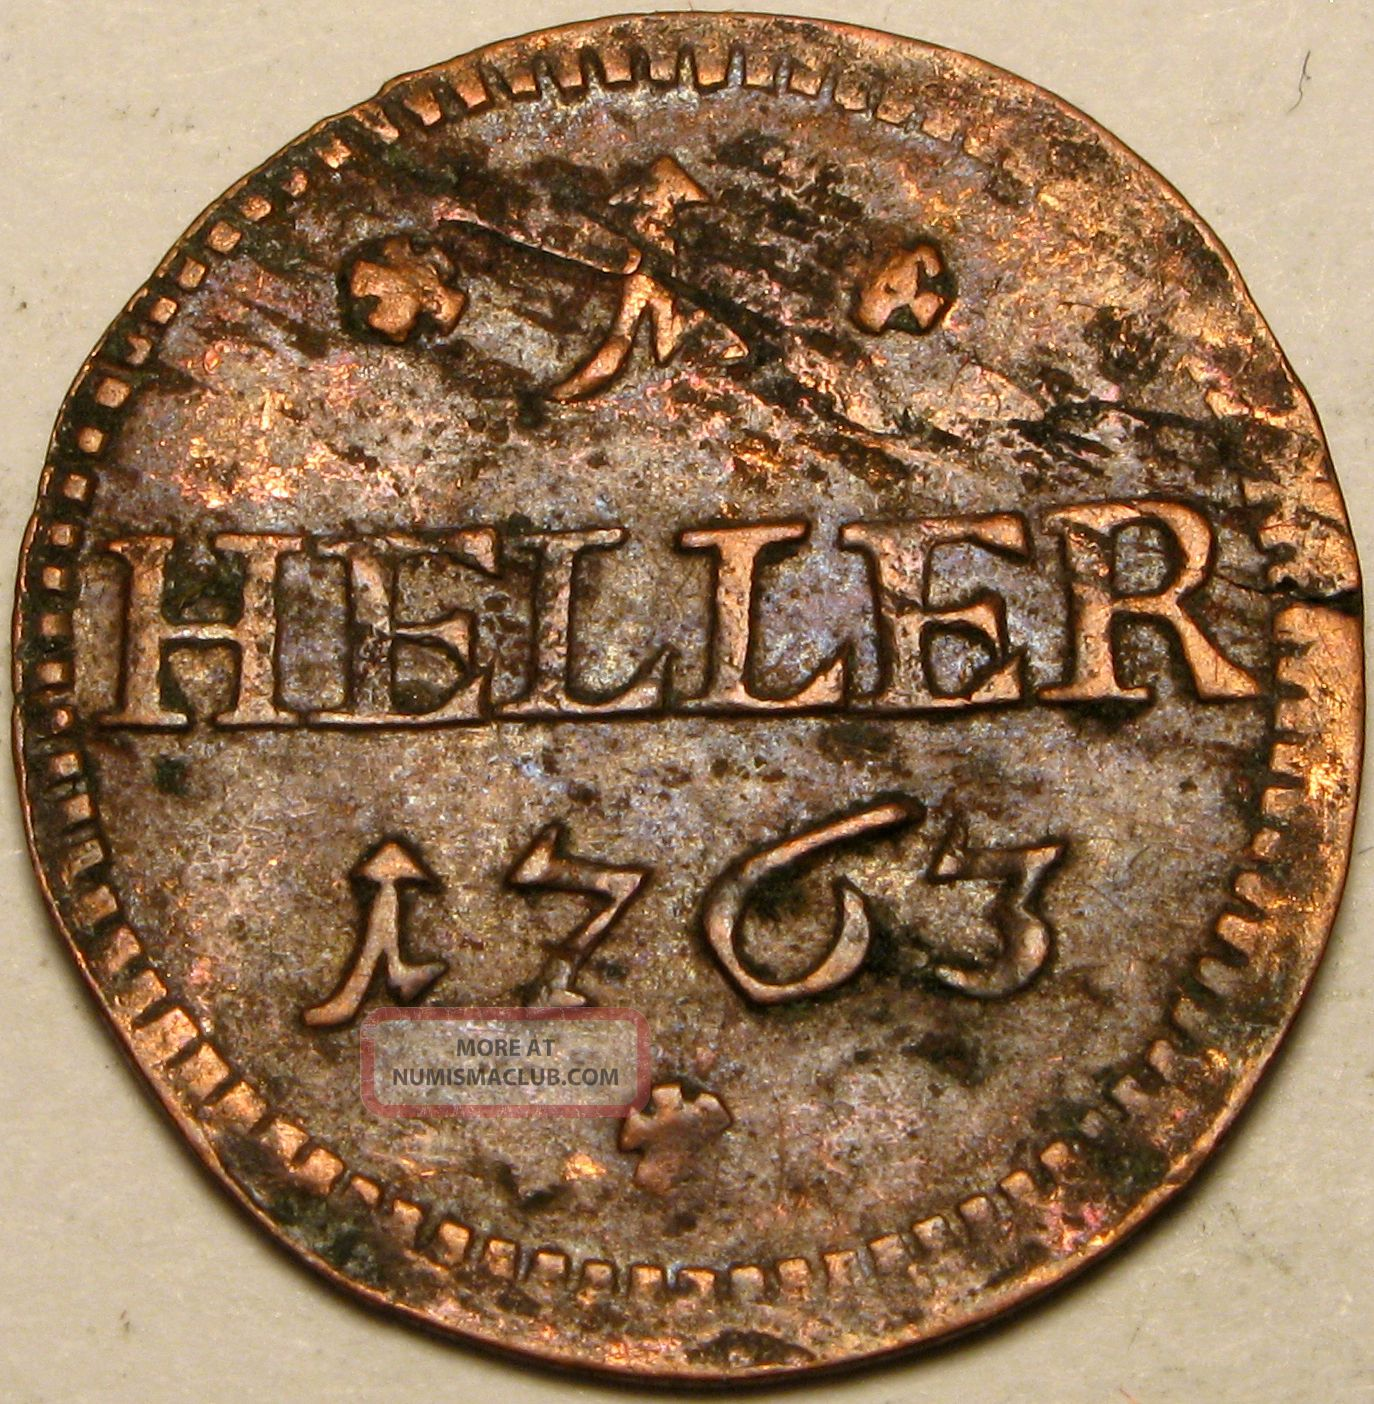 Saxe - Hildburghausen (german) 1 Heller 1763 - Copper - Ernst Friedrich Iii.  Carl - 2 Germany photo